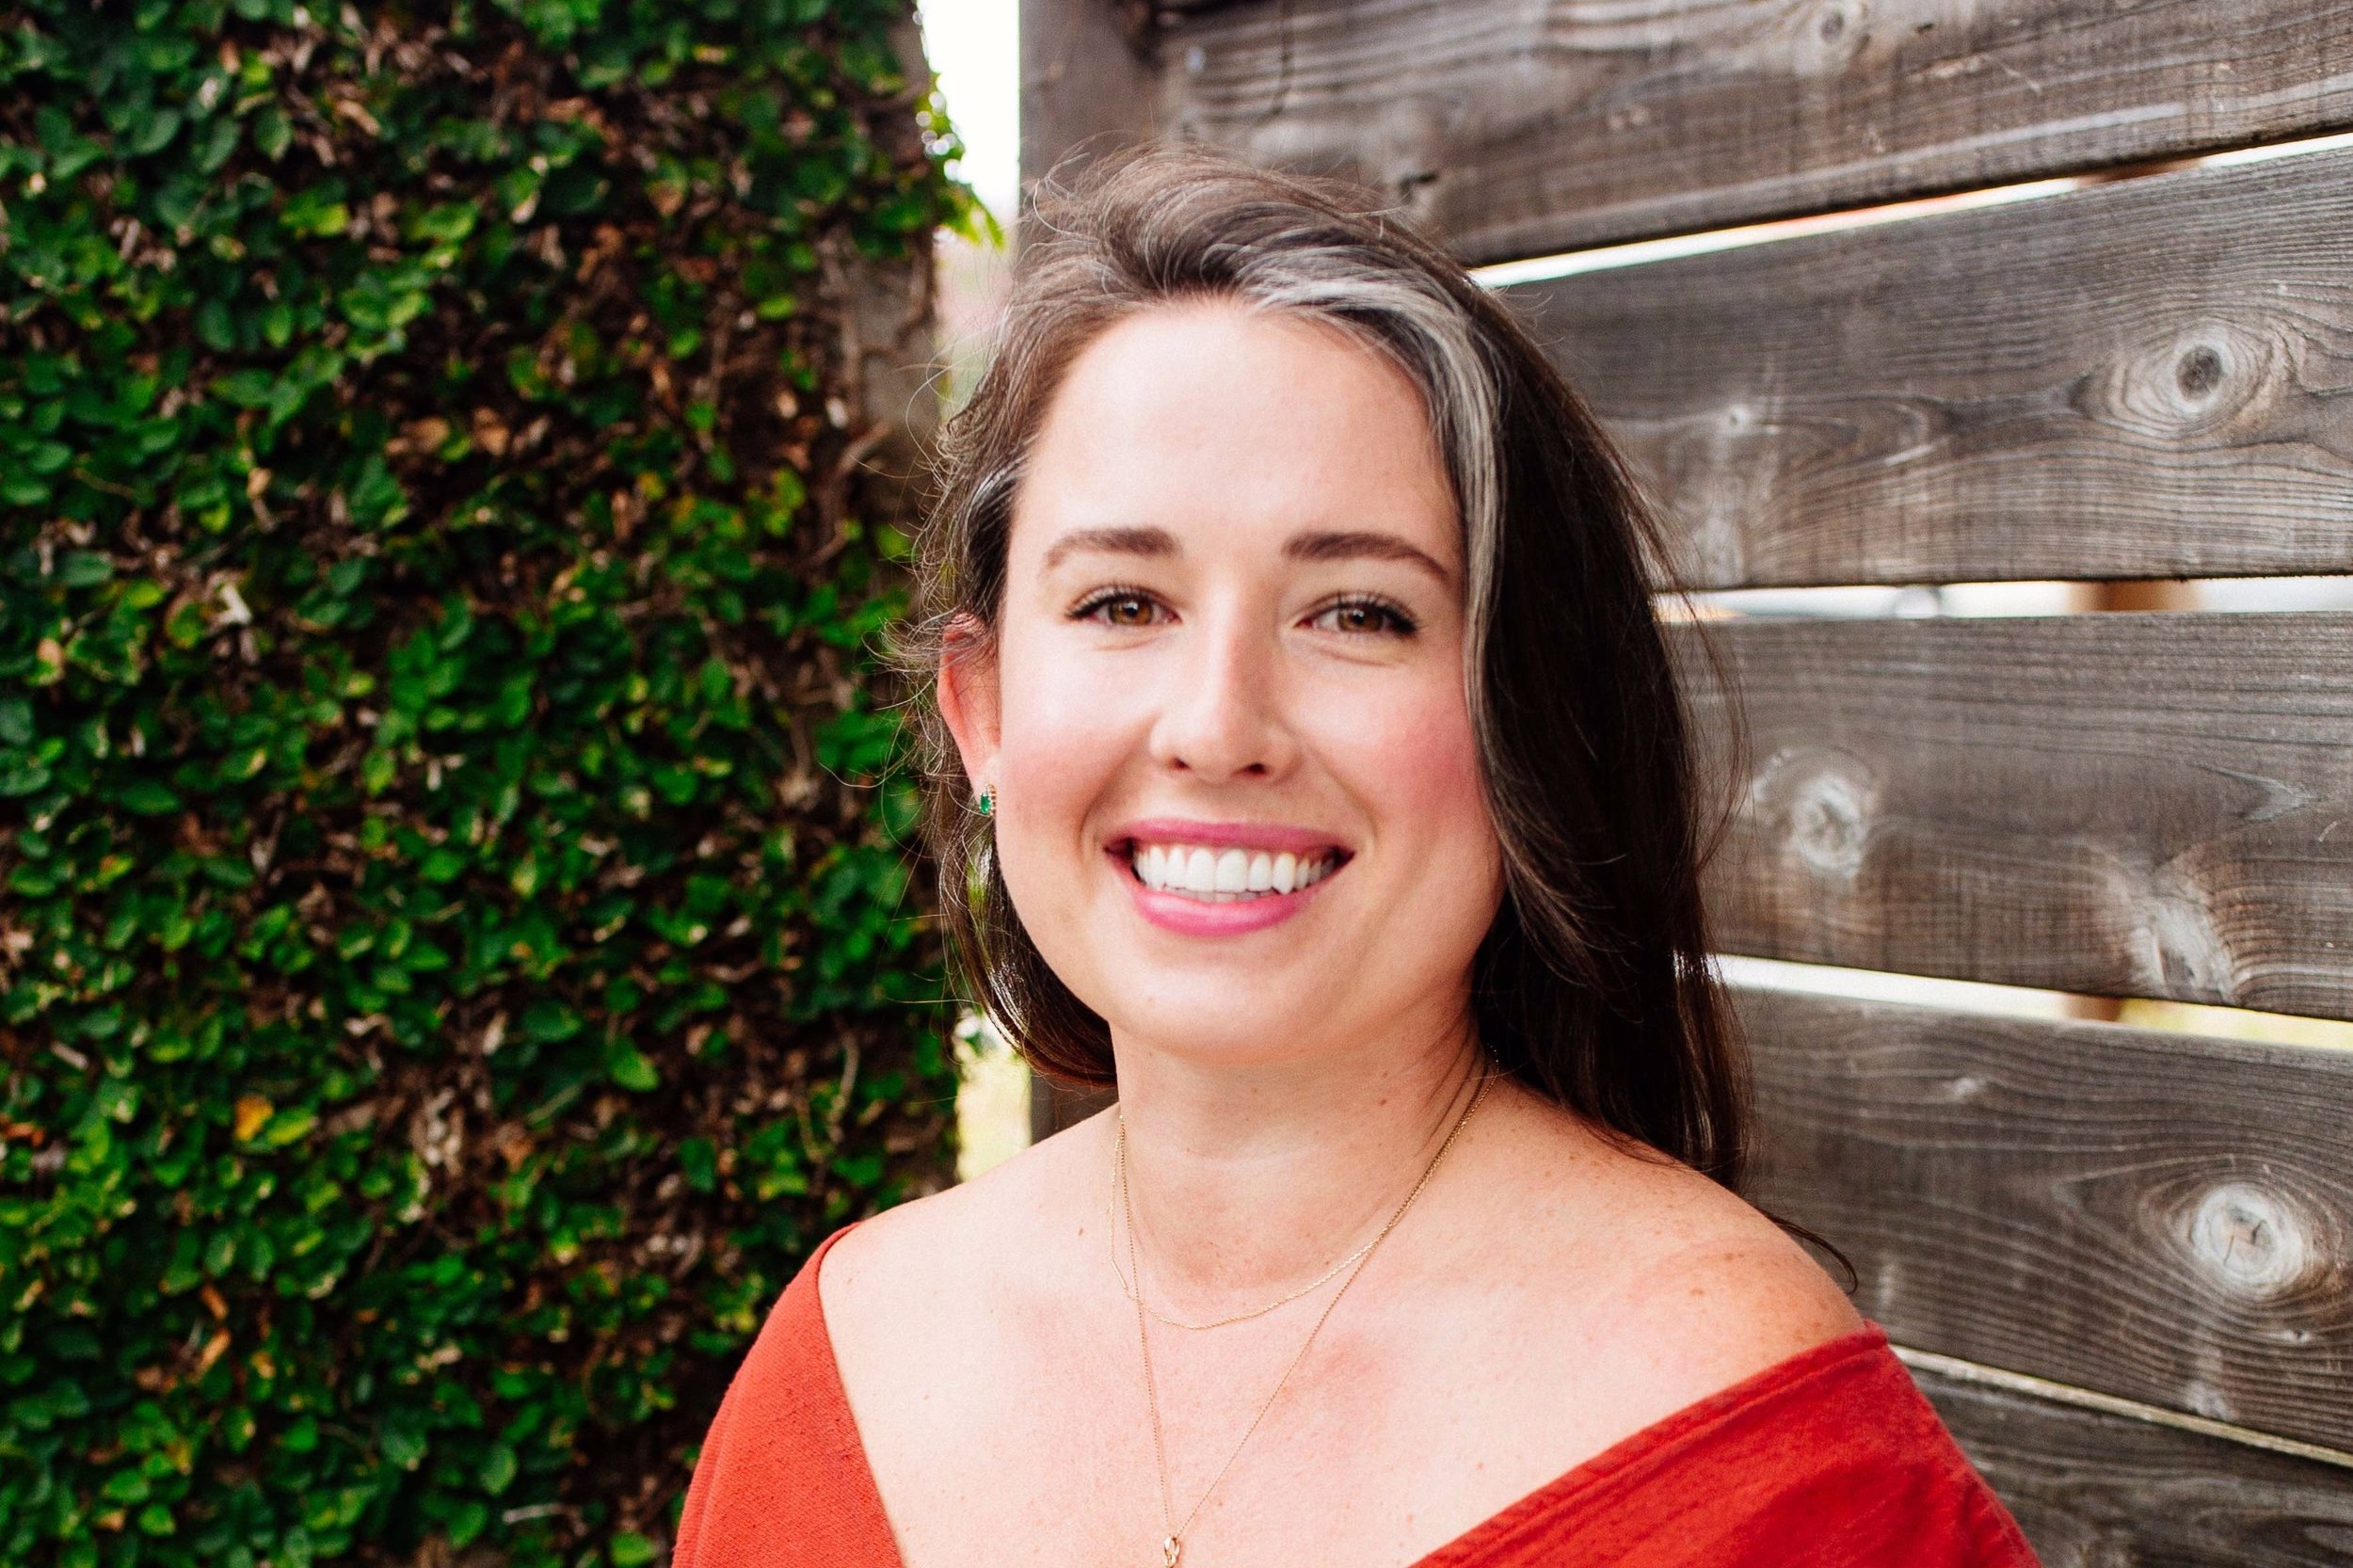 Mary Mickel    Mary Mickel, partner at Resplendent Hospitality in Austin, Texas, has over ten years of PR experience with a strong focus on the hospitality industry. Before moving to Austin in 2009, she spent time in California, working in hotels in Napa Valley and one of San Francisco's oldest hospitality PR firms, Andrew Freeman & Company. Upon heading south, Mickel and her husband founded Austin's first hard cider house, Argus Cidery. She subsequently co-founded Resplendent Hospitality, with partner, Ali Slutsky, with the mission to assist in building hospitality brands across all platforms.